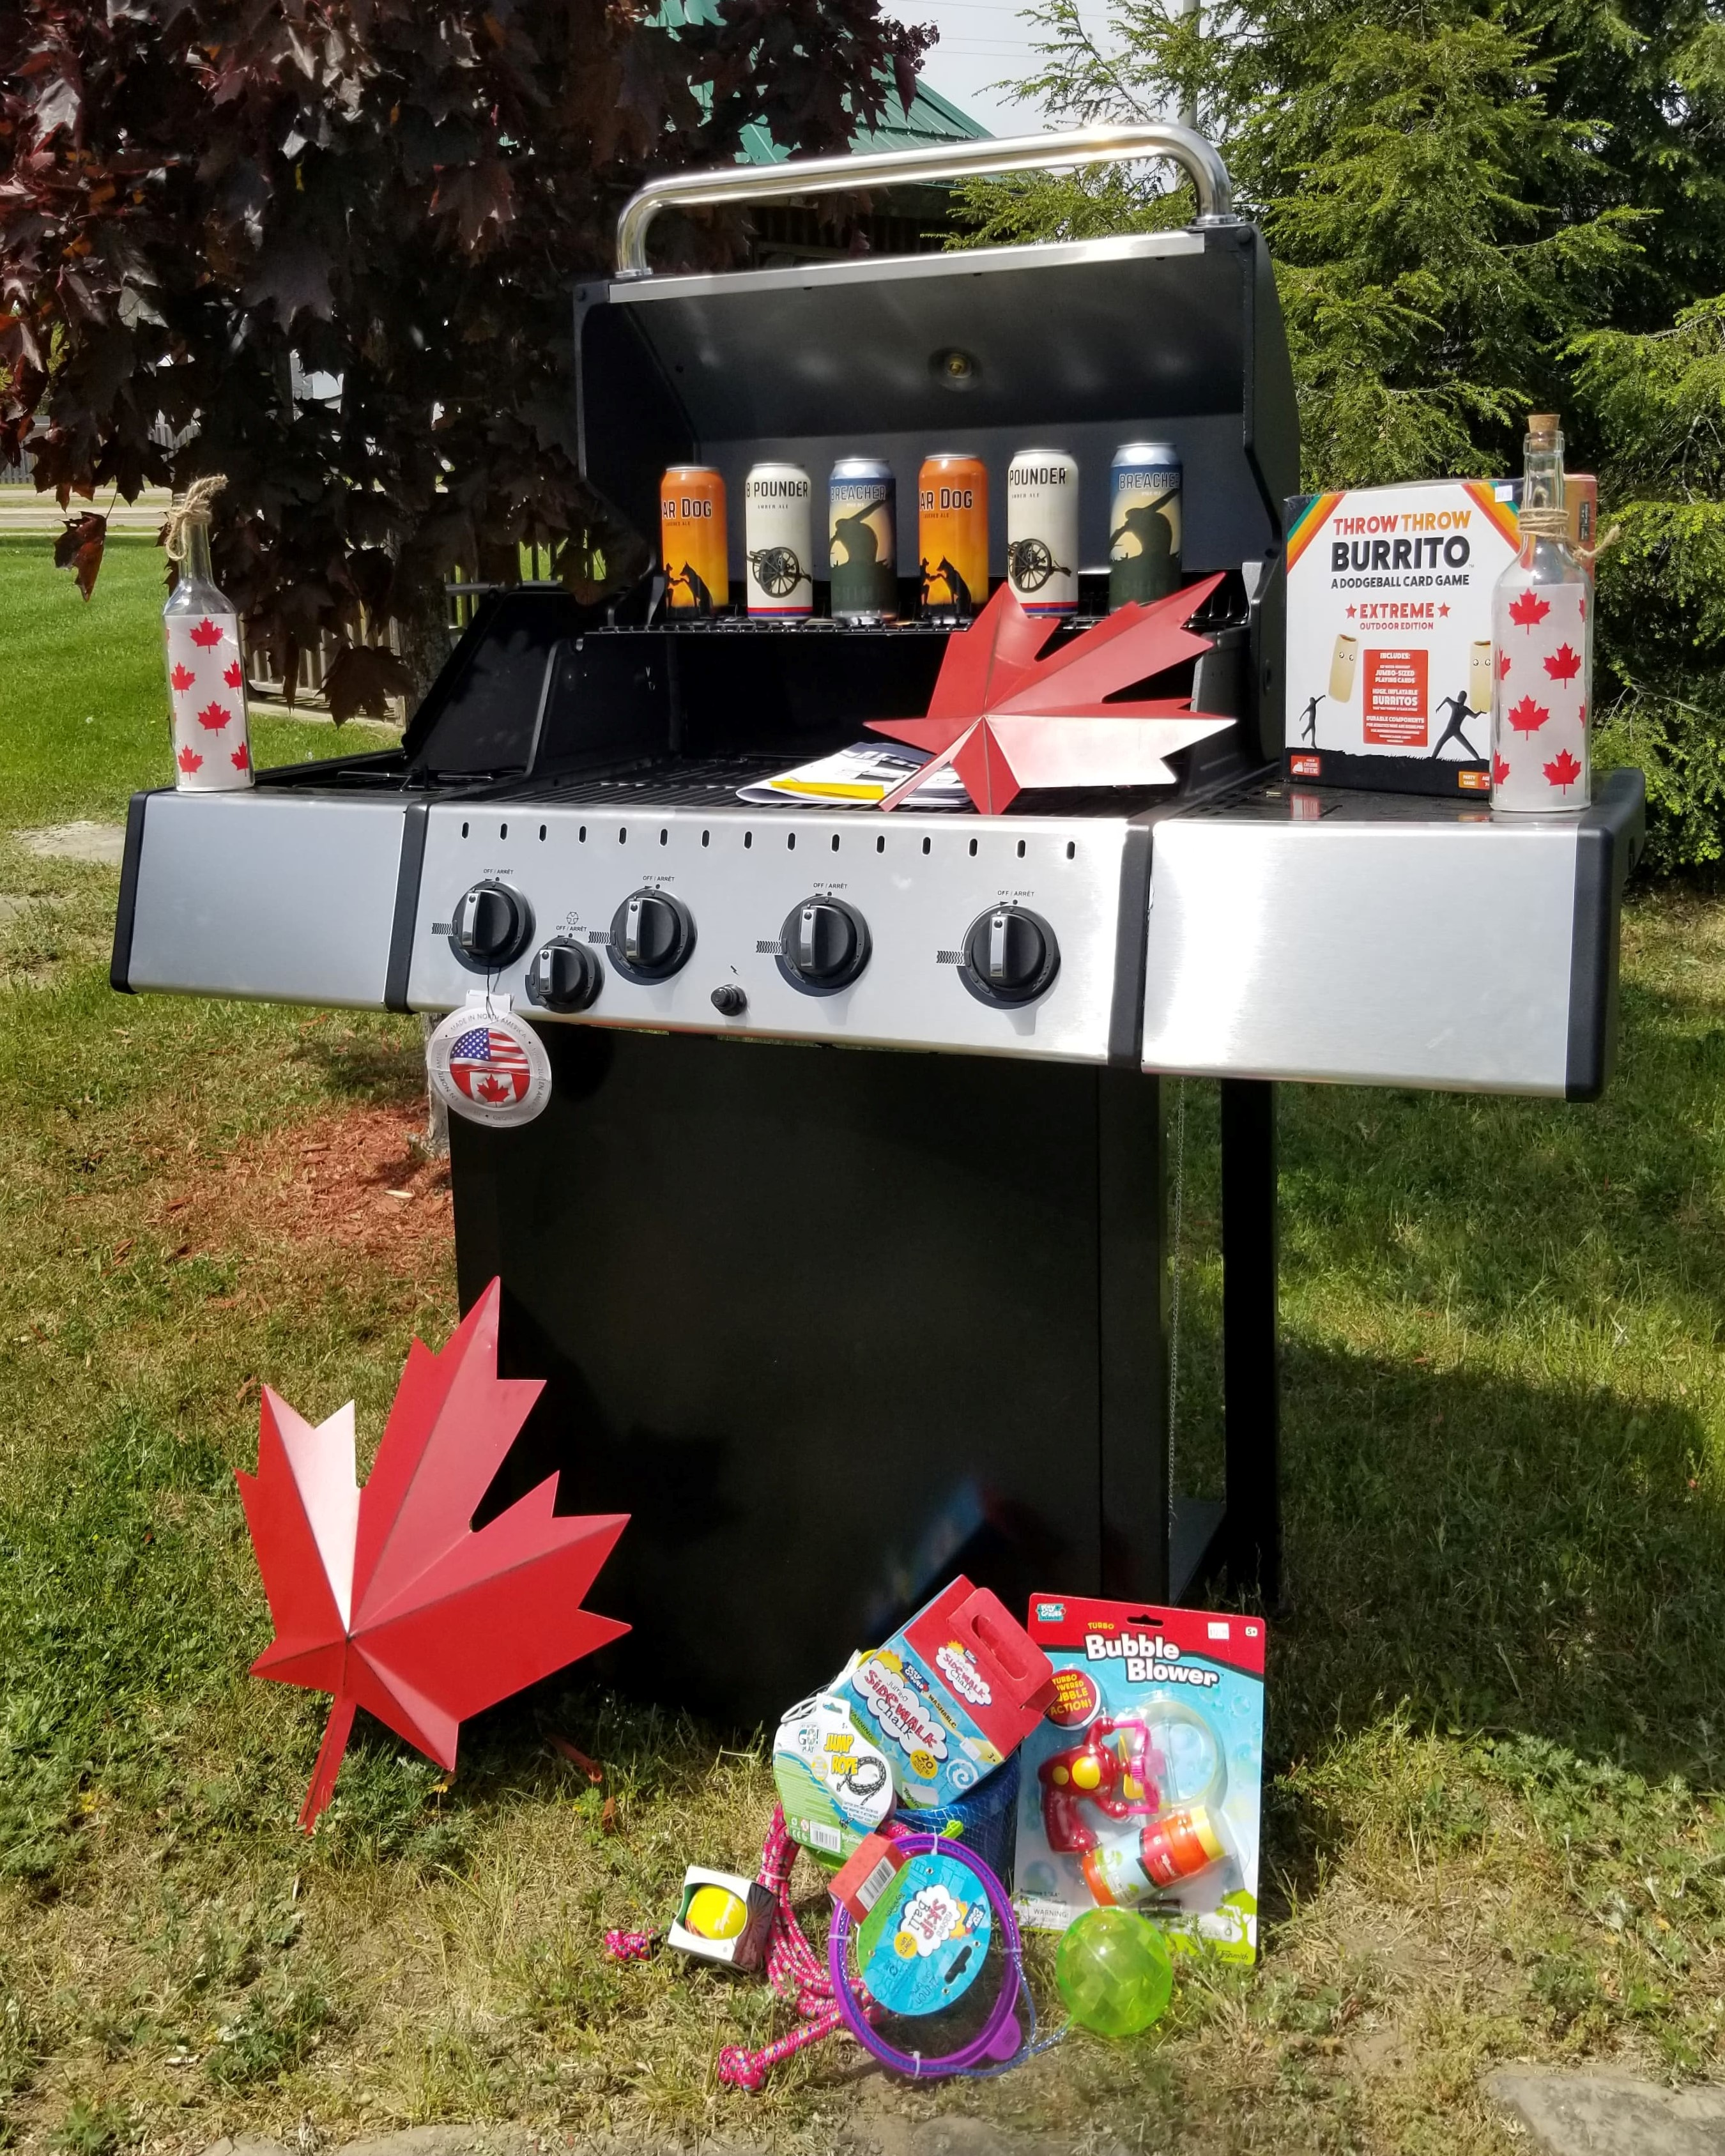 barbeque, beer, games, decor